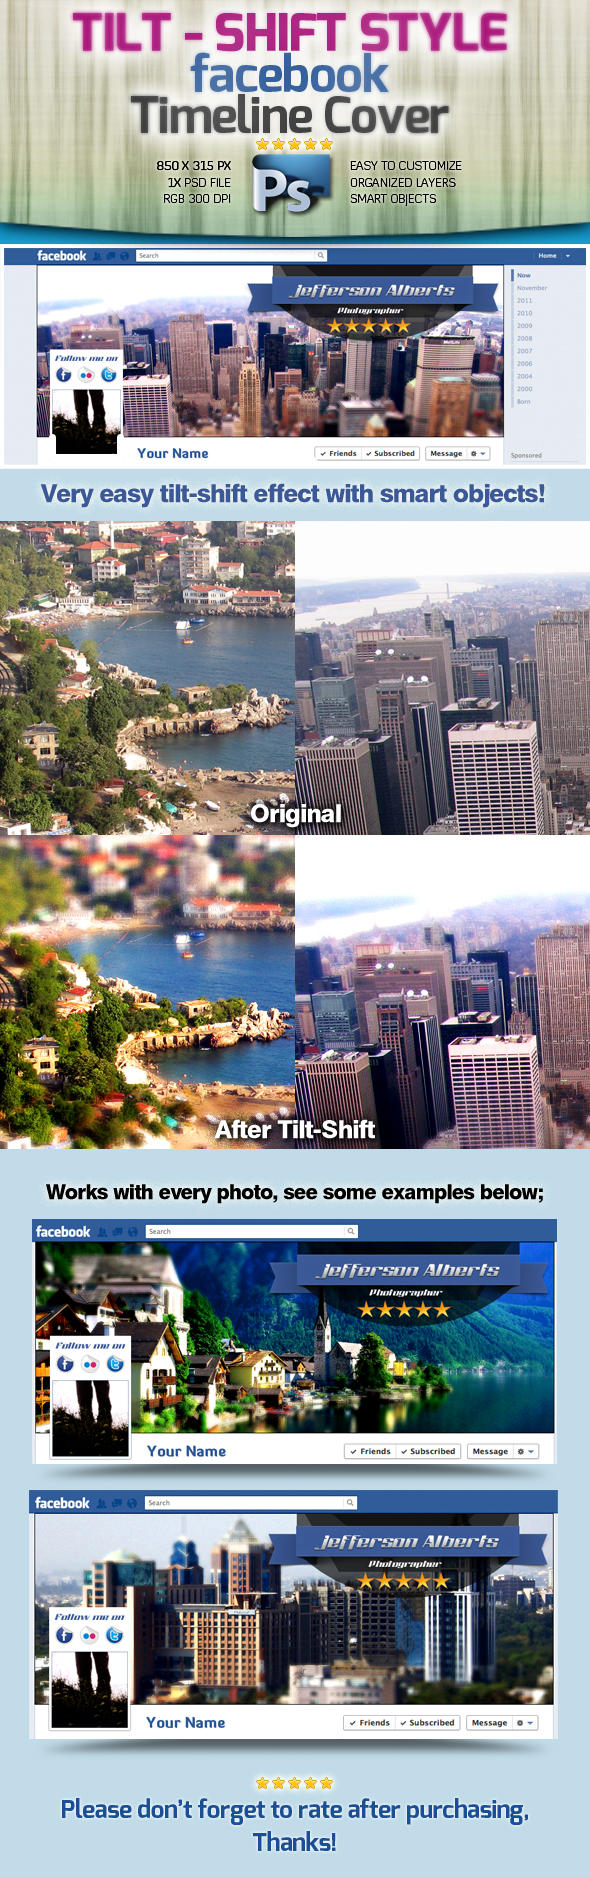 Tilt-Shift Style Facebook Timeline Cover -PSD- by squizmo